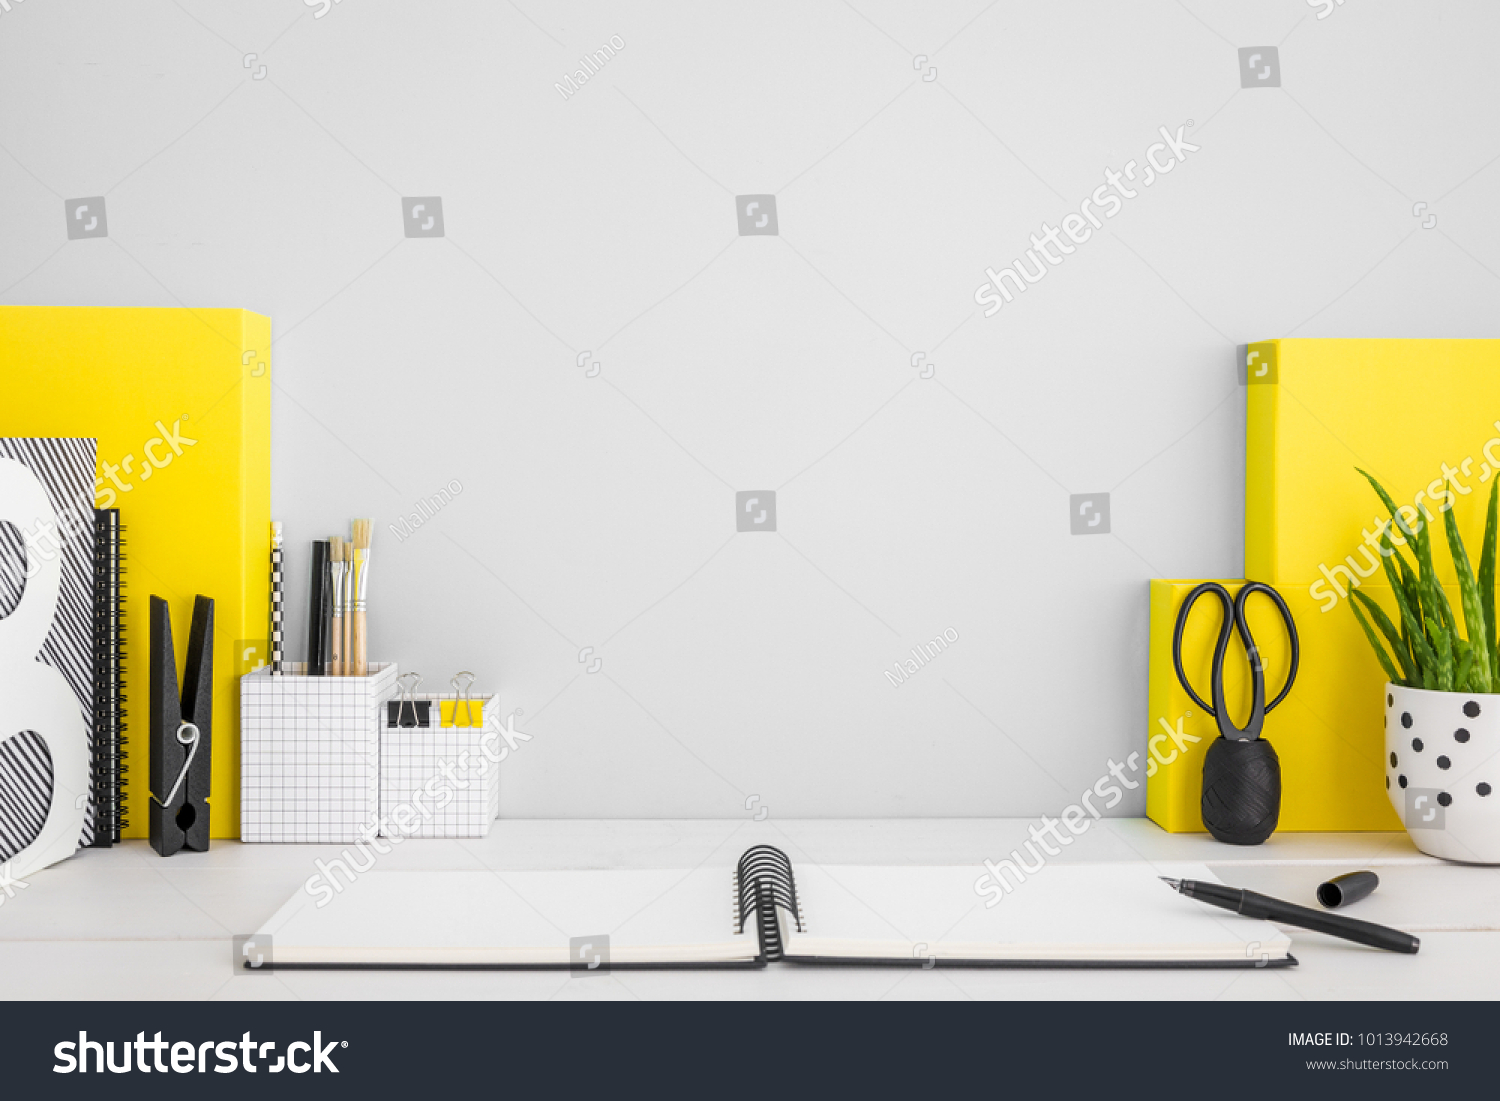 Miraculous Stock Photo Stylish Home Office Desk With Copy Space Books Interior Design Ideas Clesiryabchikinfo